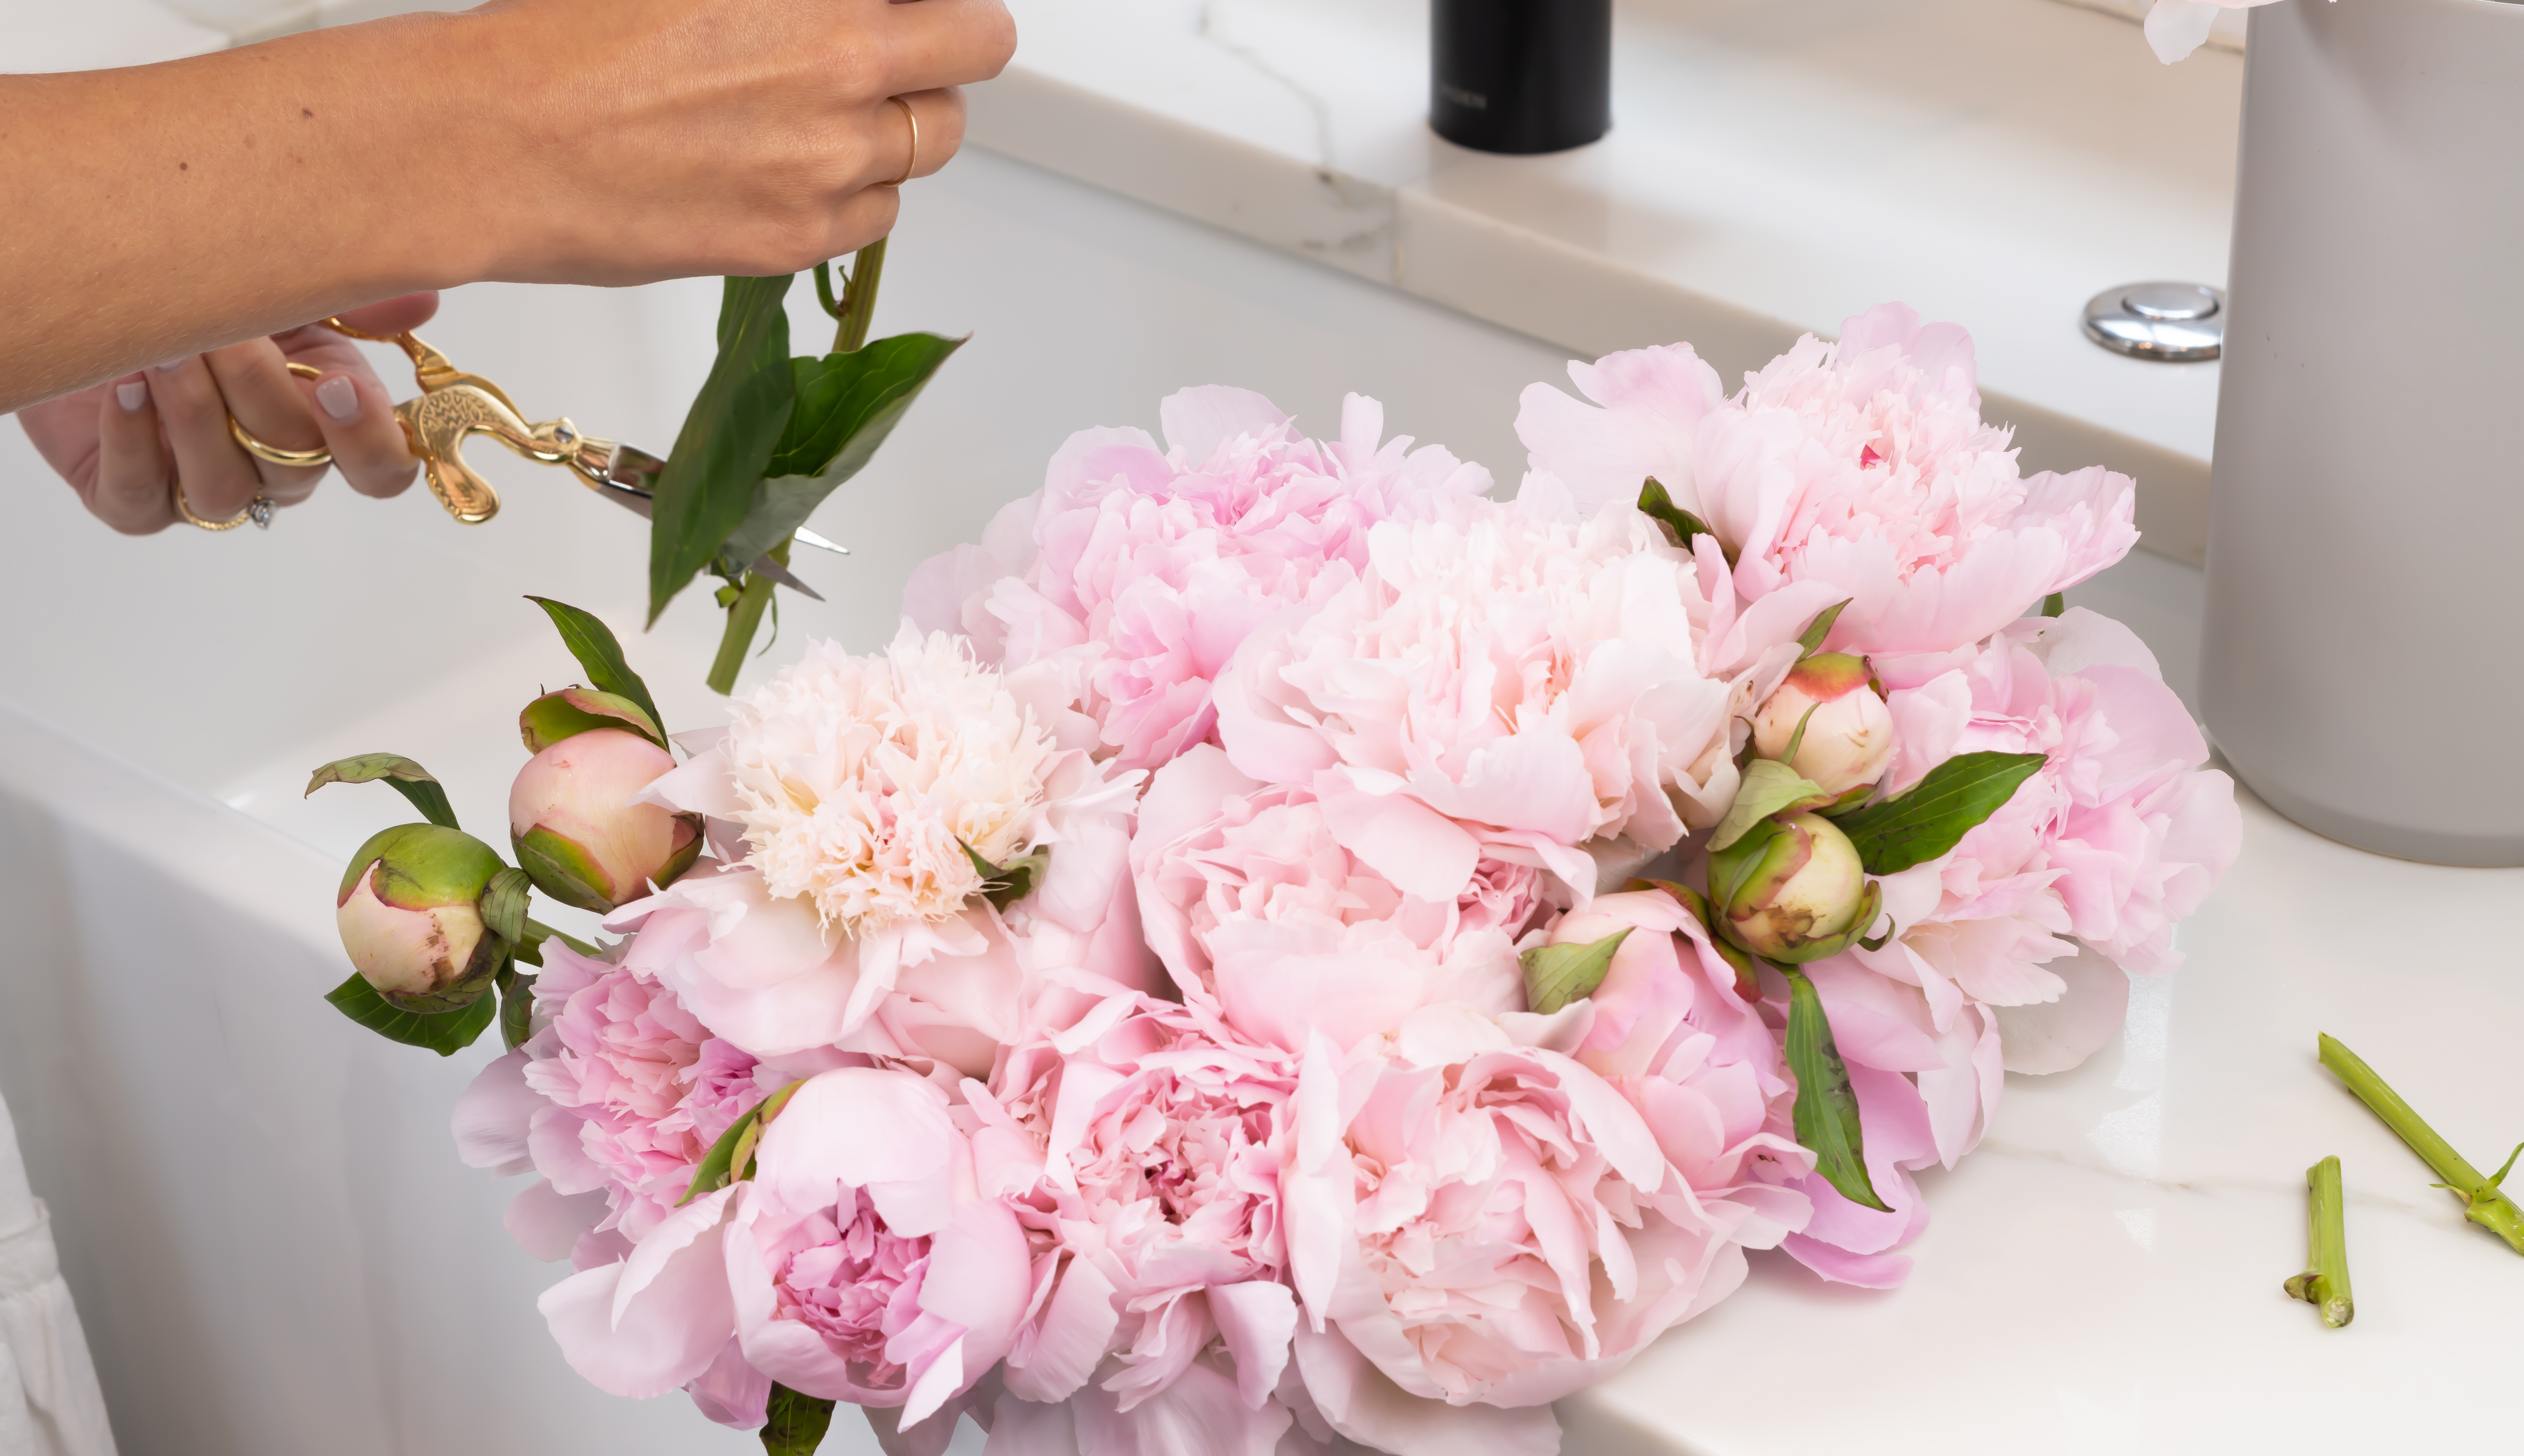 Light pink peony bouquet on white counter.